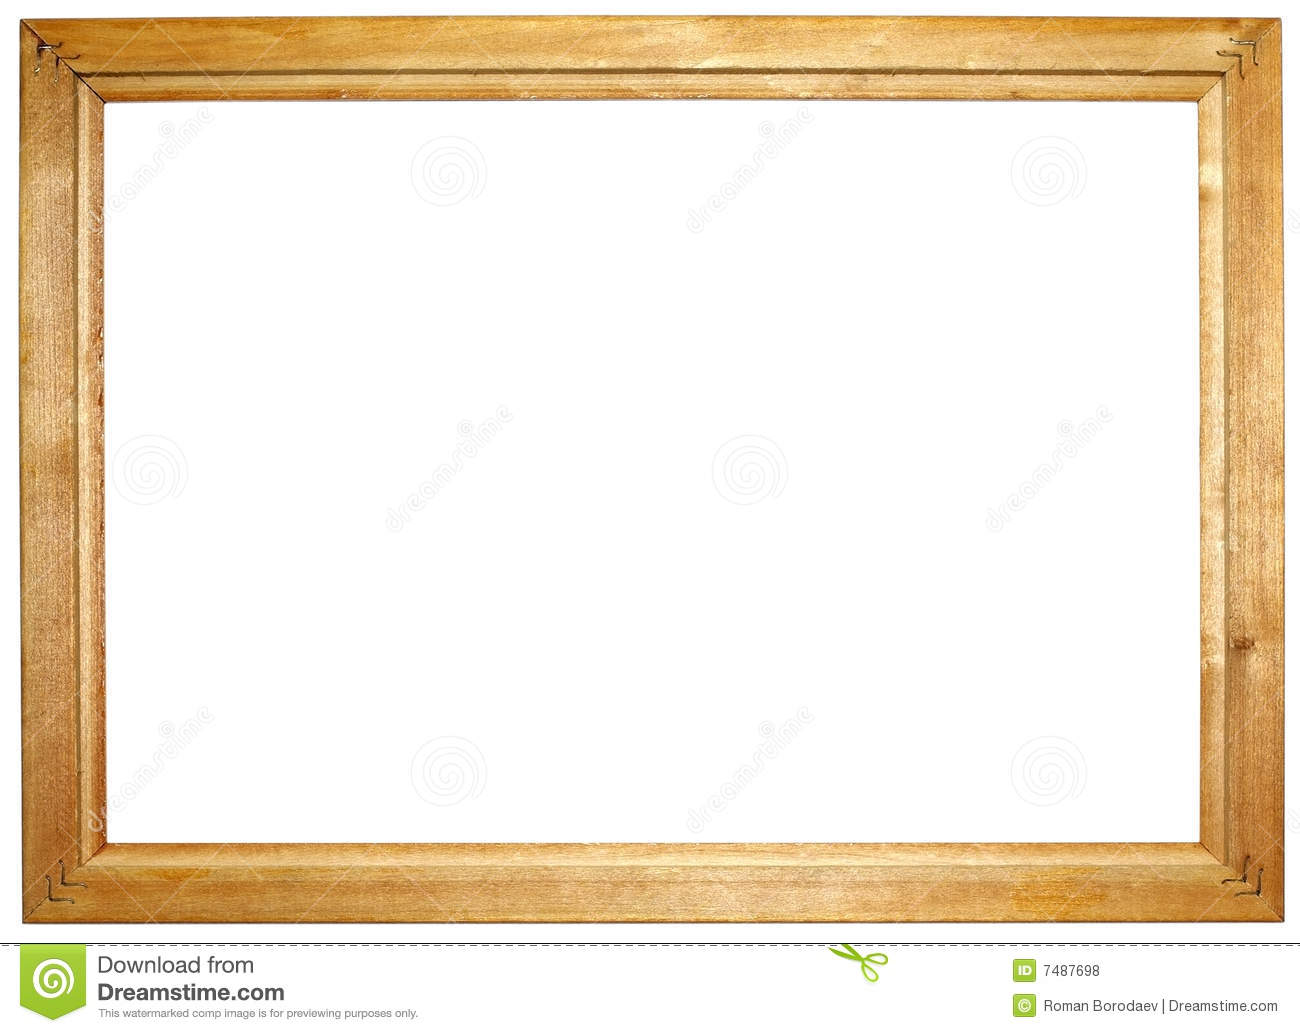 wooden picture frame clipart - Wood Frame